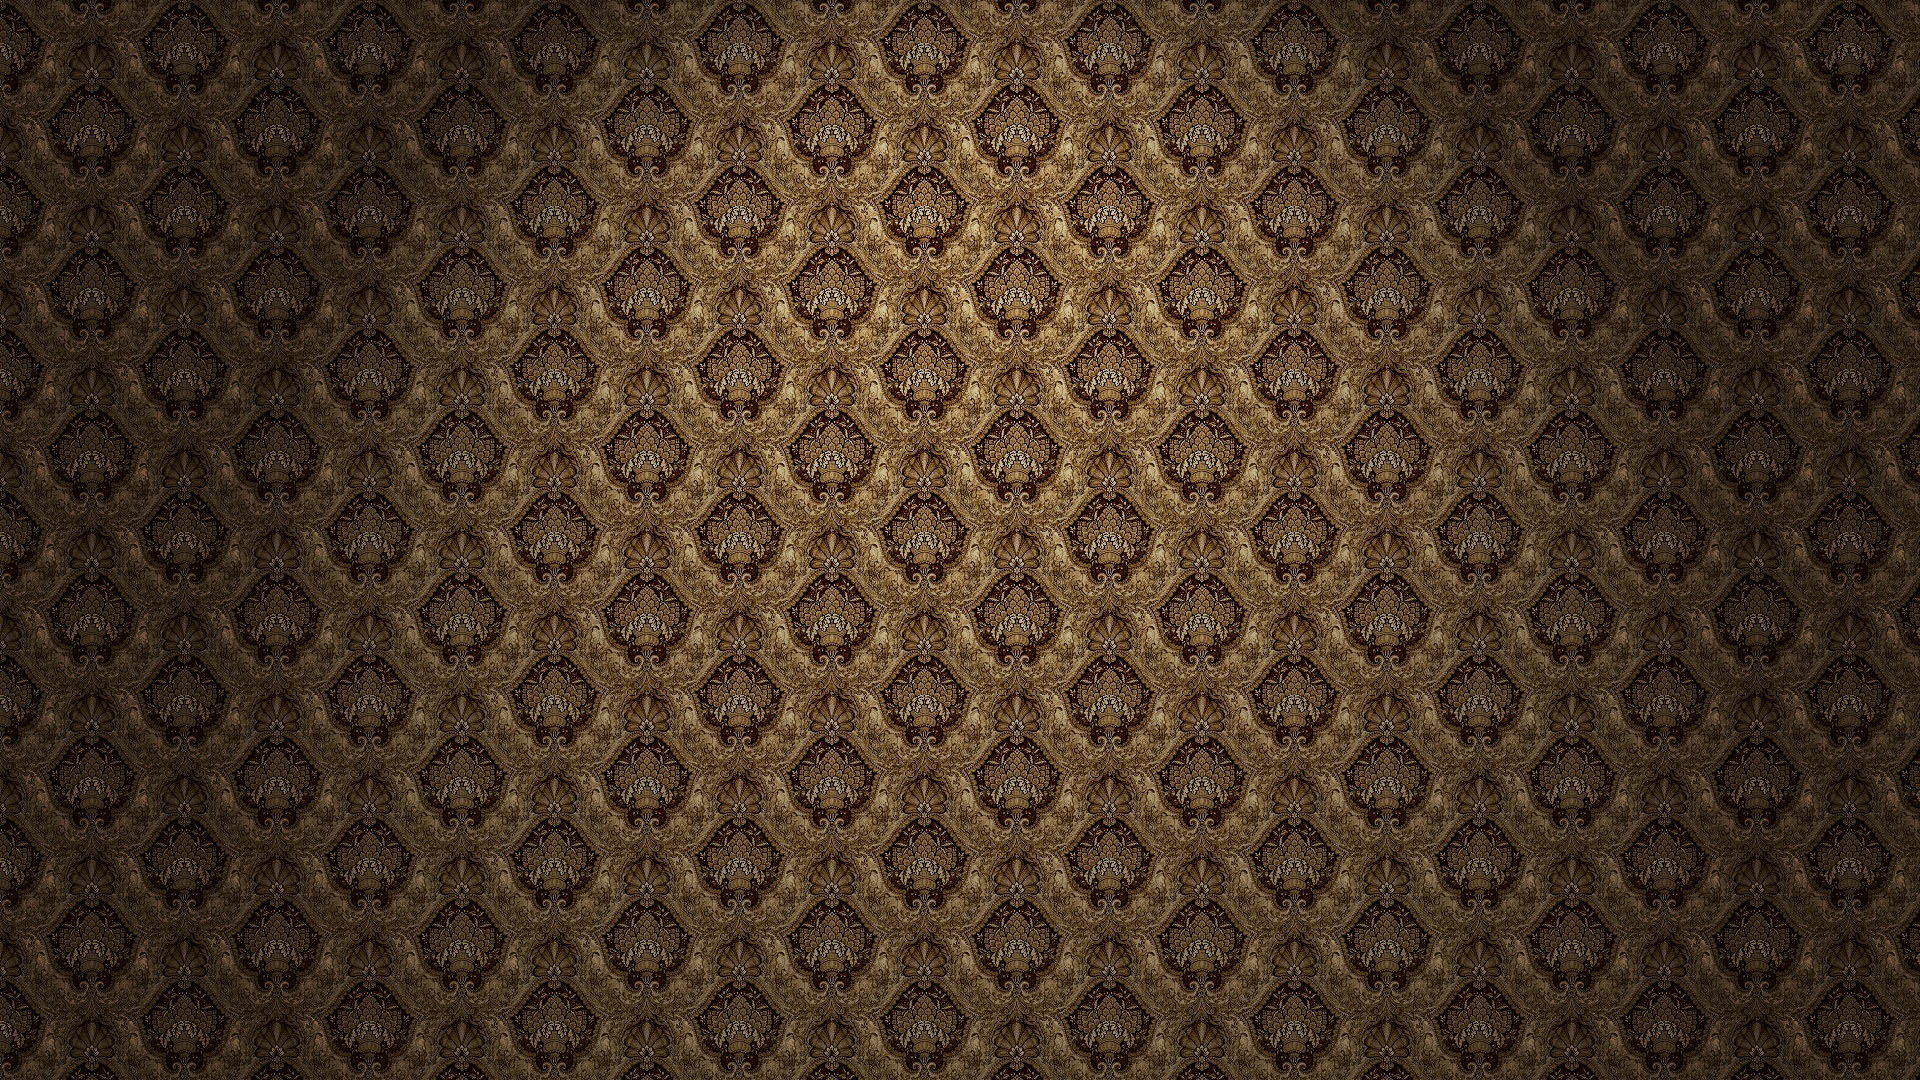 Black Pattern Background Black Pattern Background Image 1920x1080